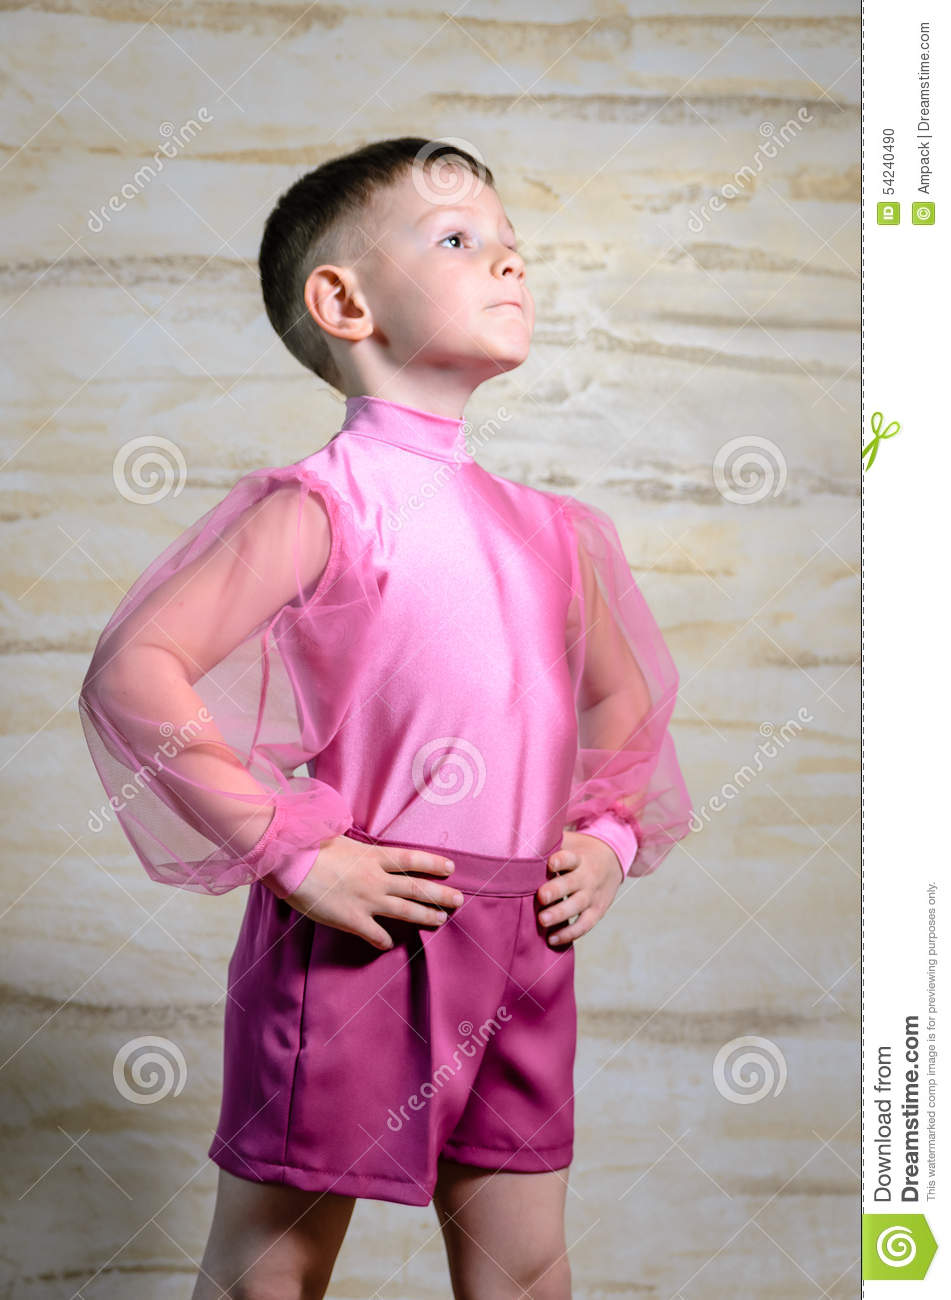 Boy Wearing Pink Dance Outfit Posing In Studio Stock Photo - Image 54240490